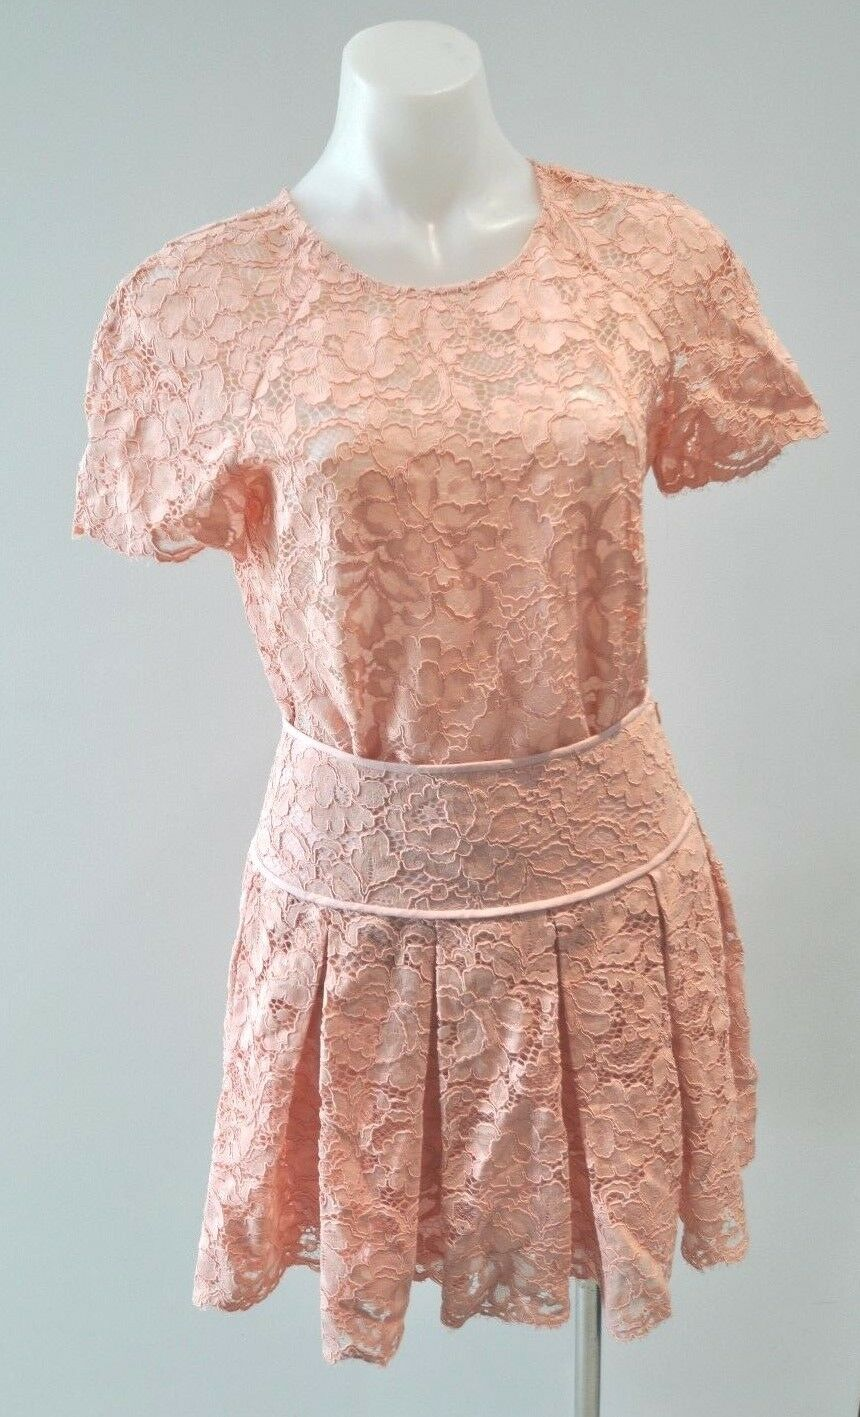 DKNY pink lace top and skirt - size AU 8-10,  499 NEW